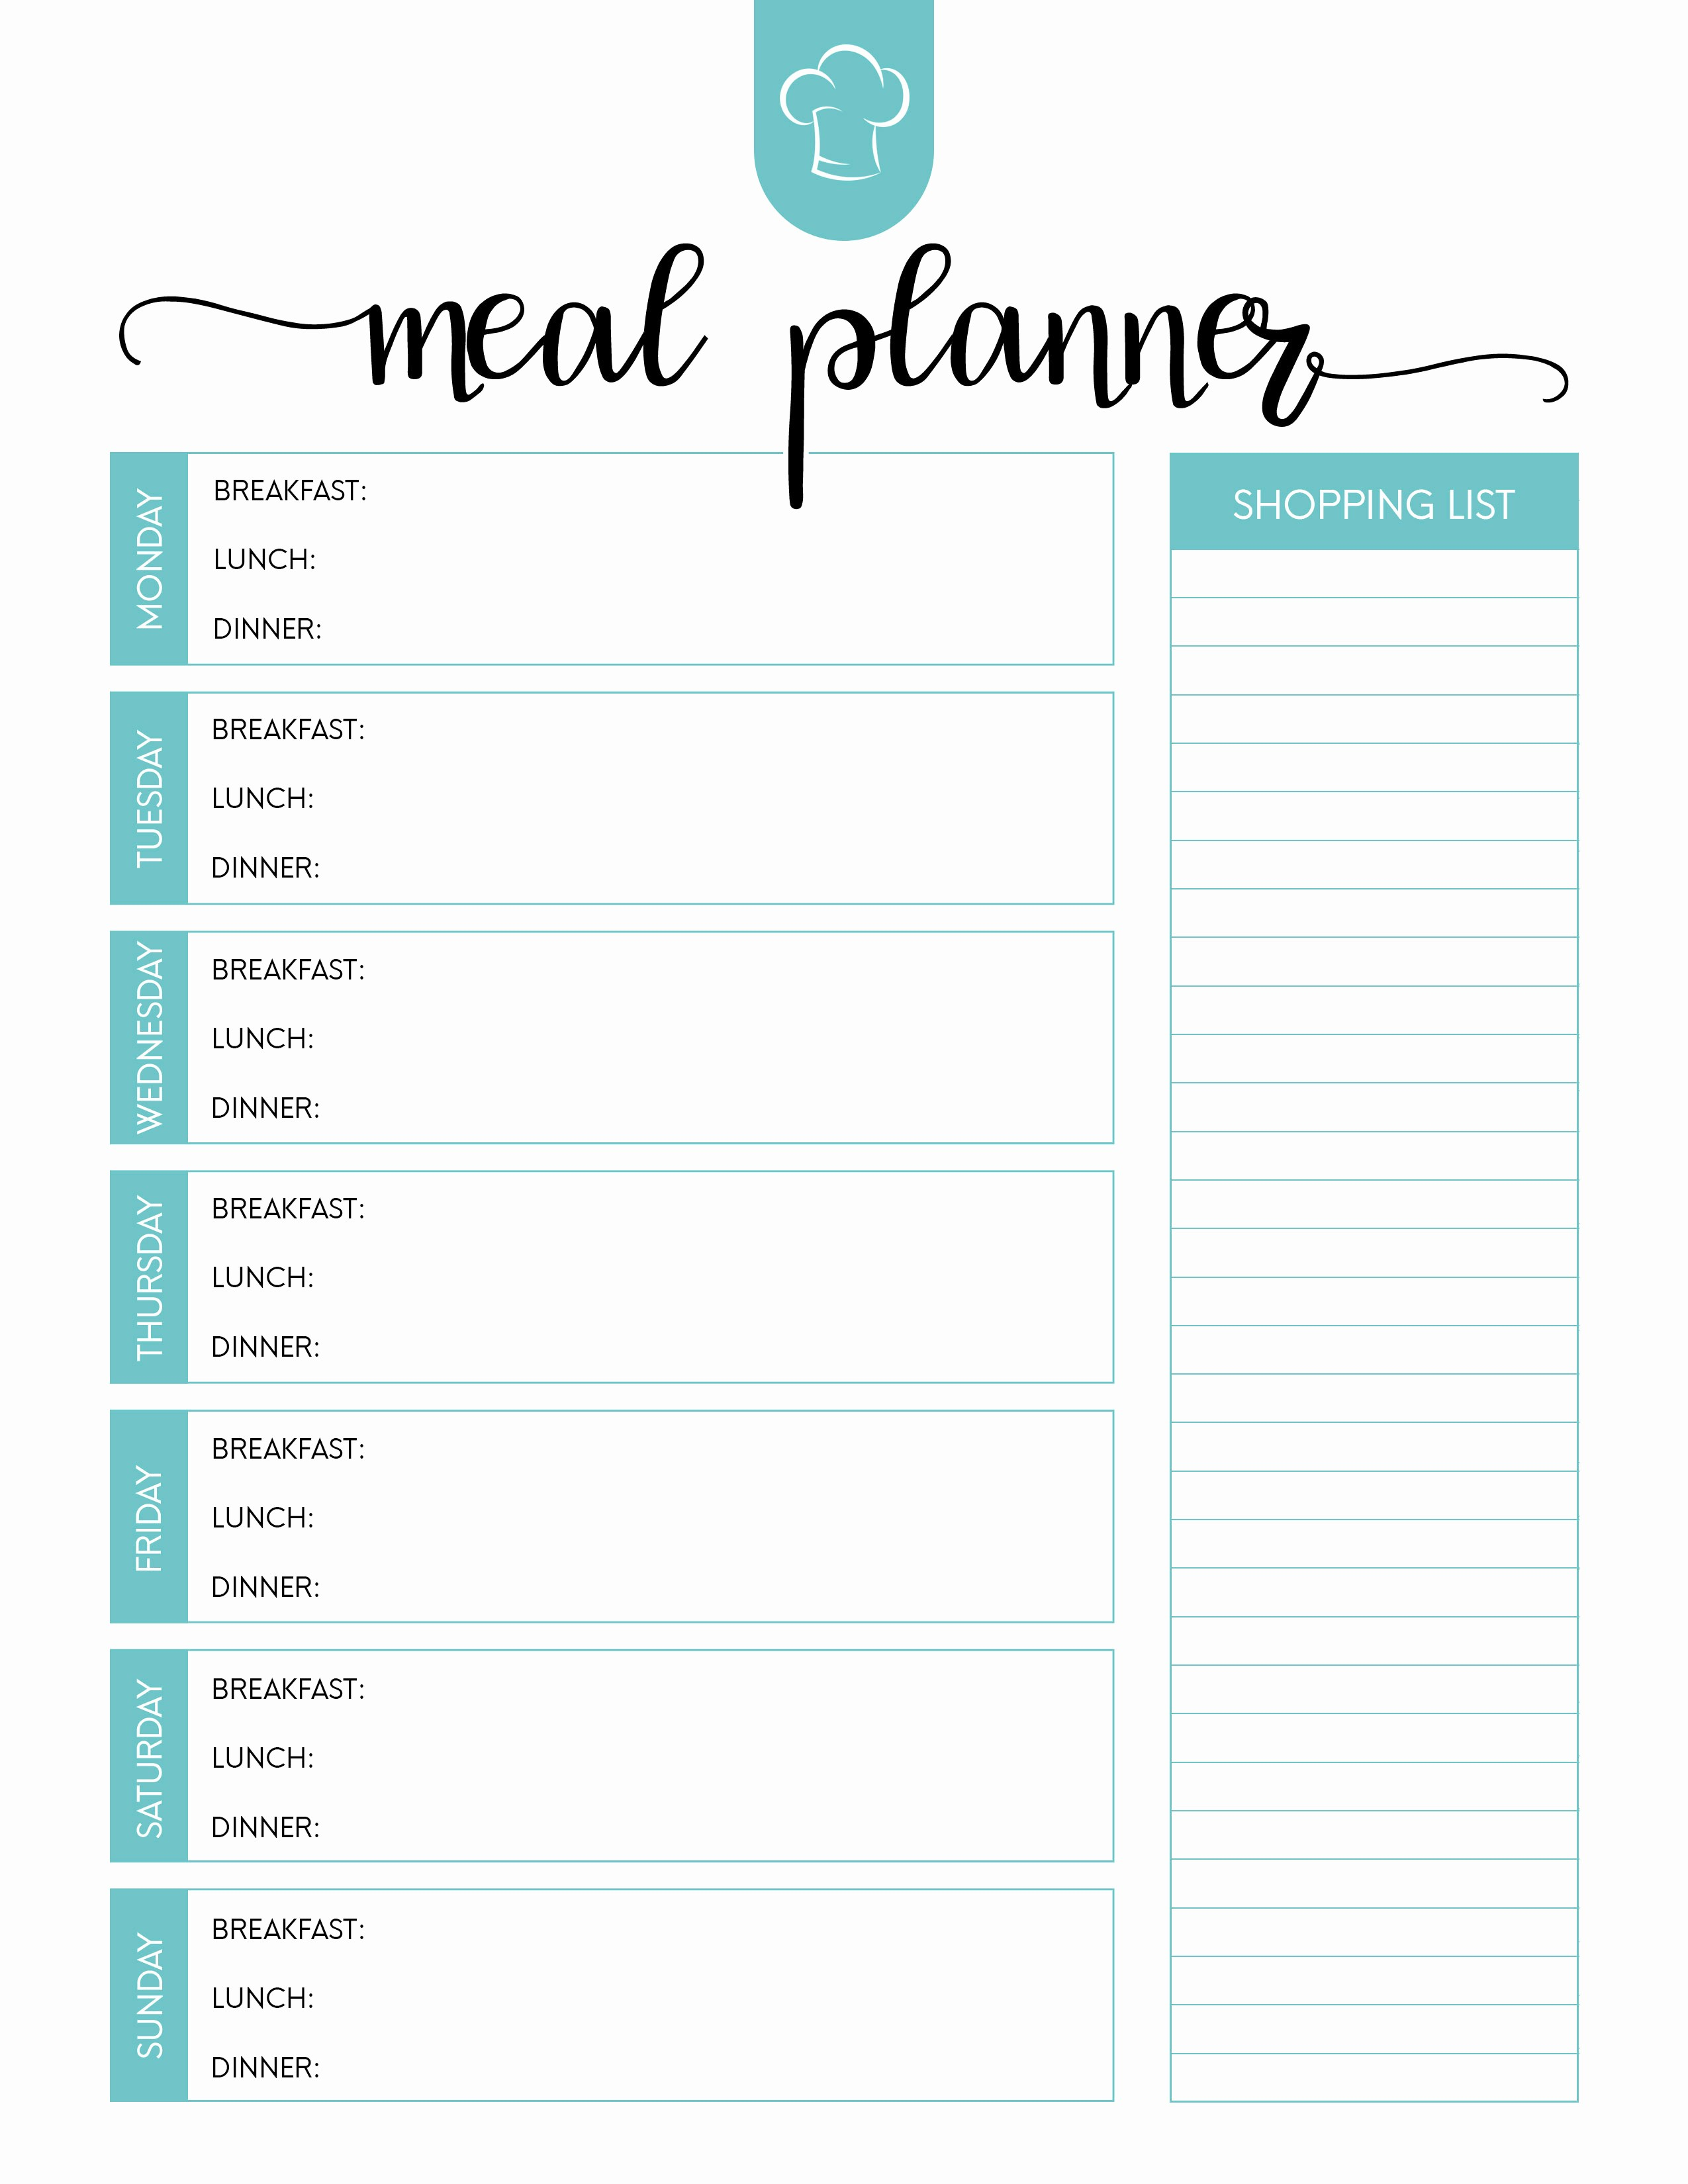 Free Meal Planner Template Download Inspirational Free Printable Meal Planner Set the Cottage Market